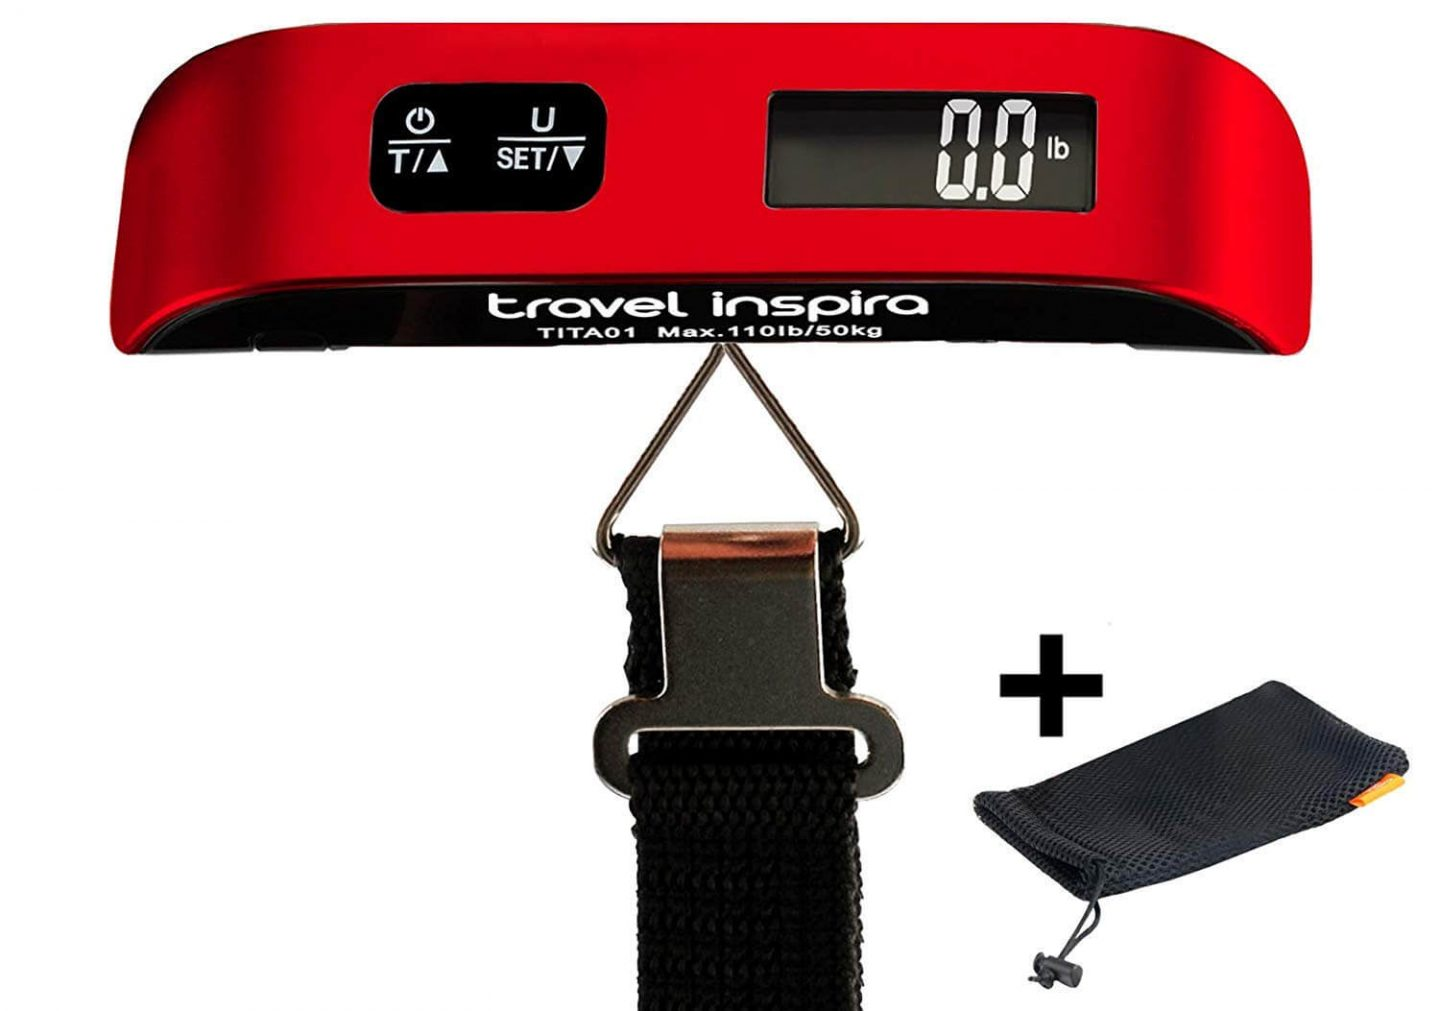 Travel Inspira 110LB Digital Luggage Scale